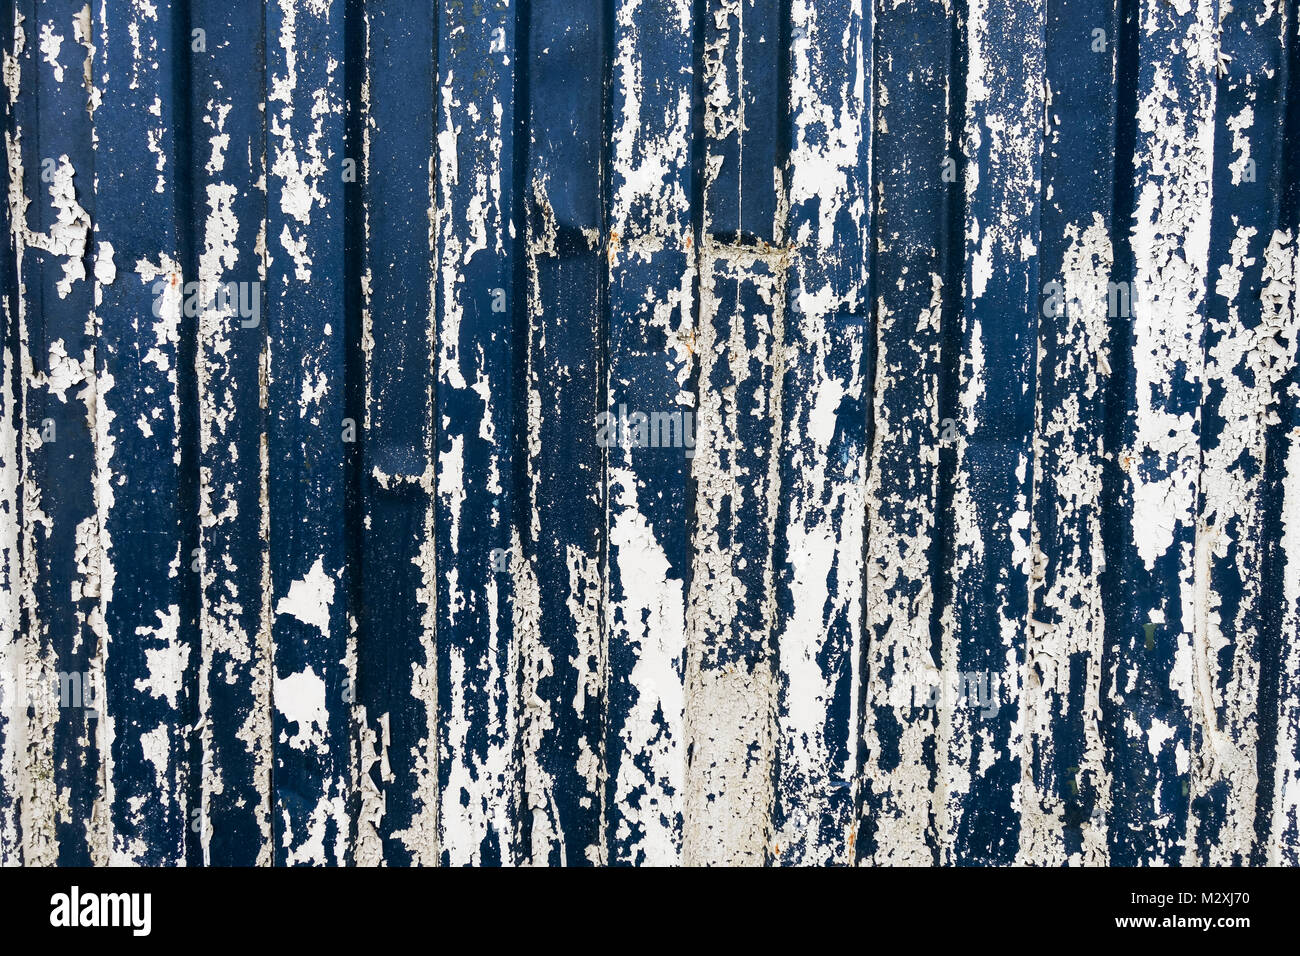 Distressed blue and white background - Stock Image